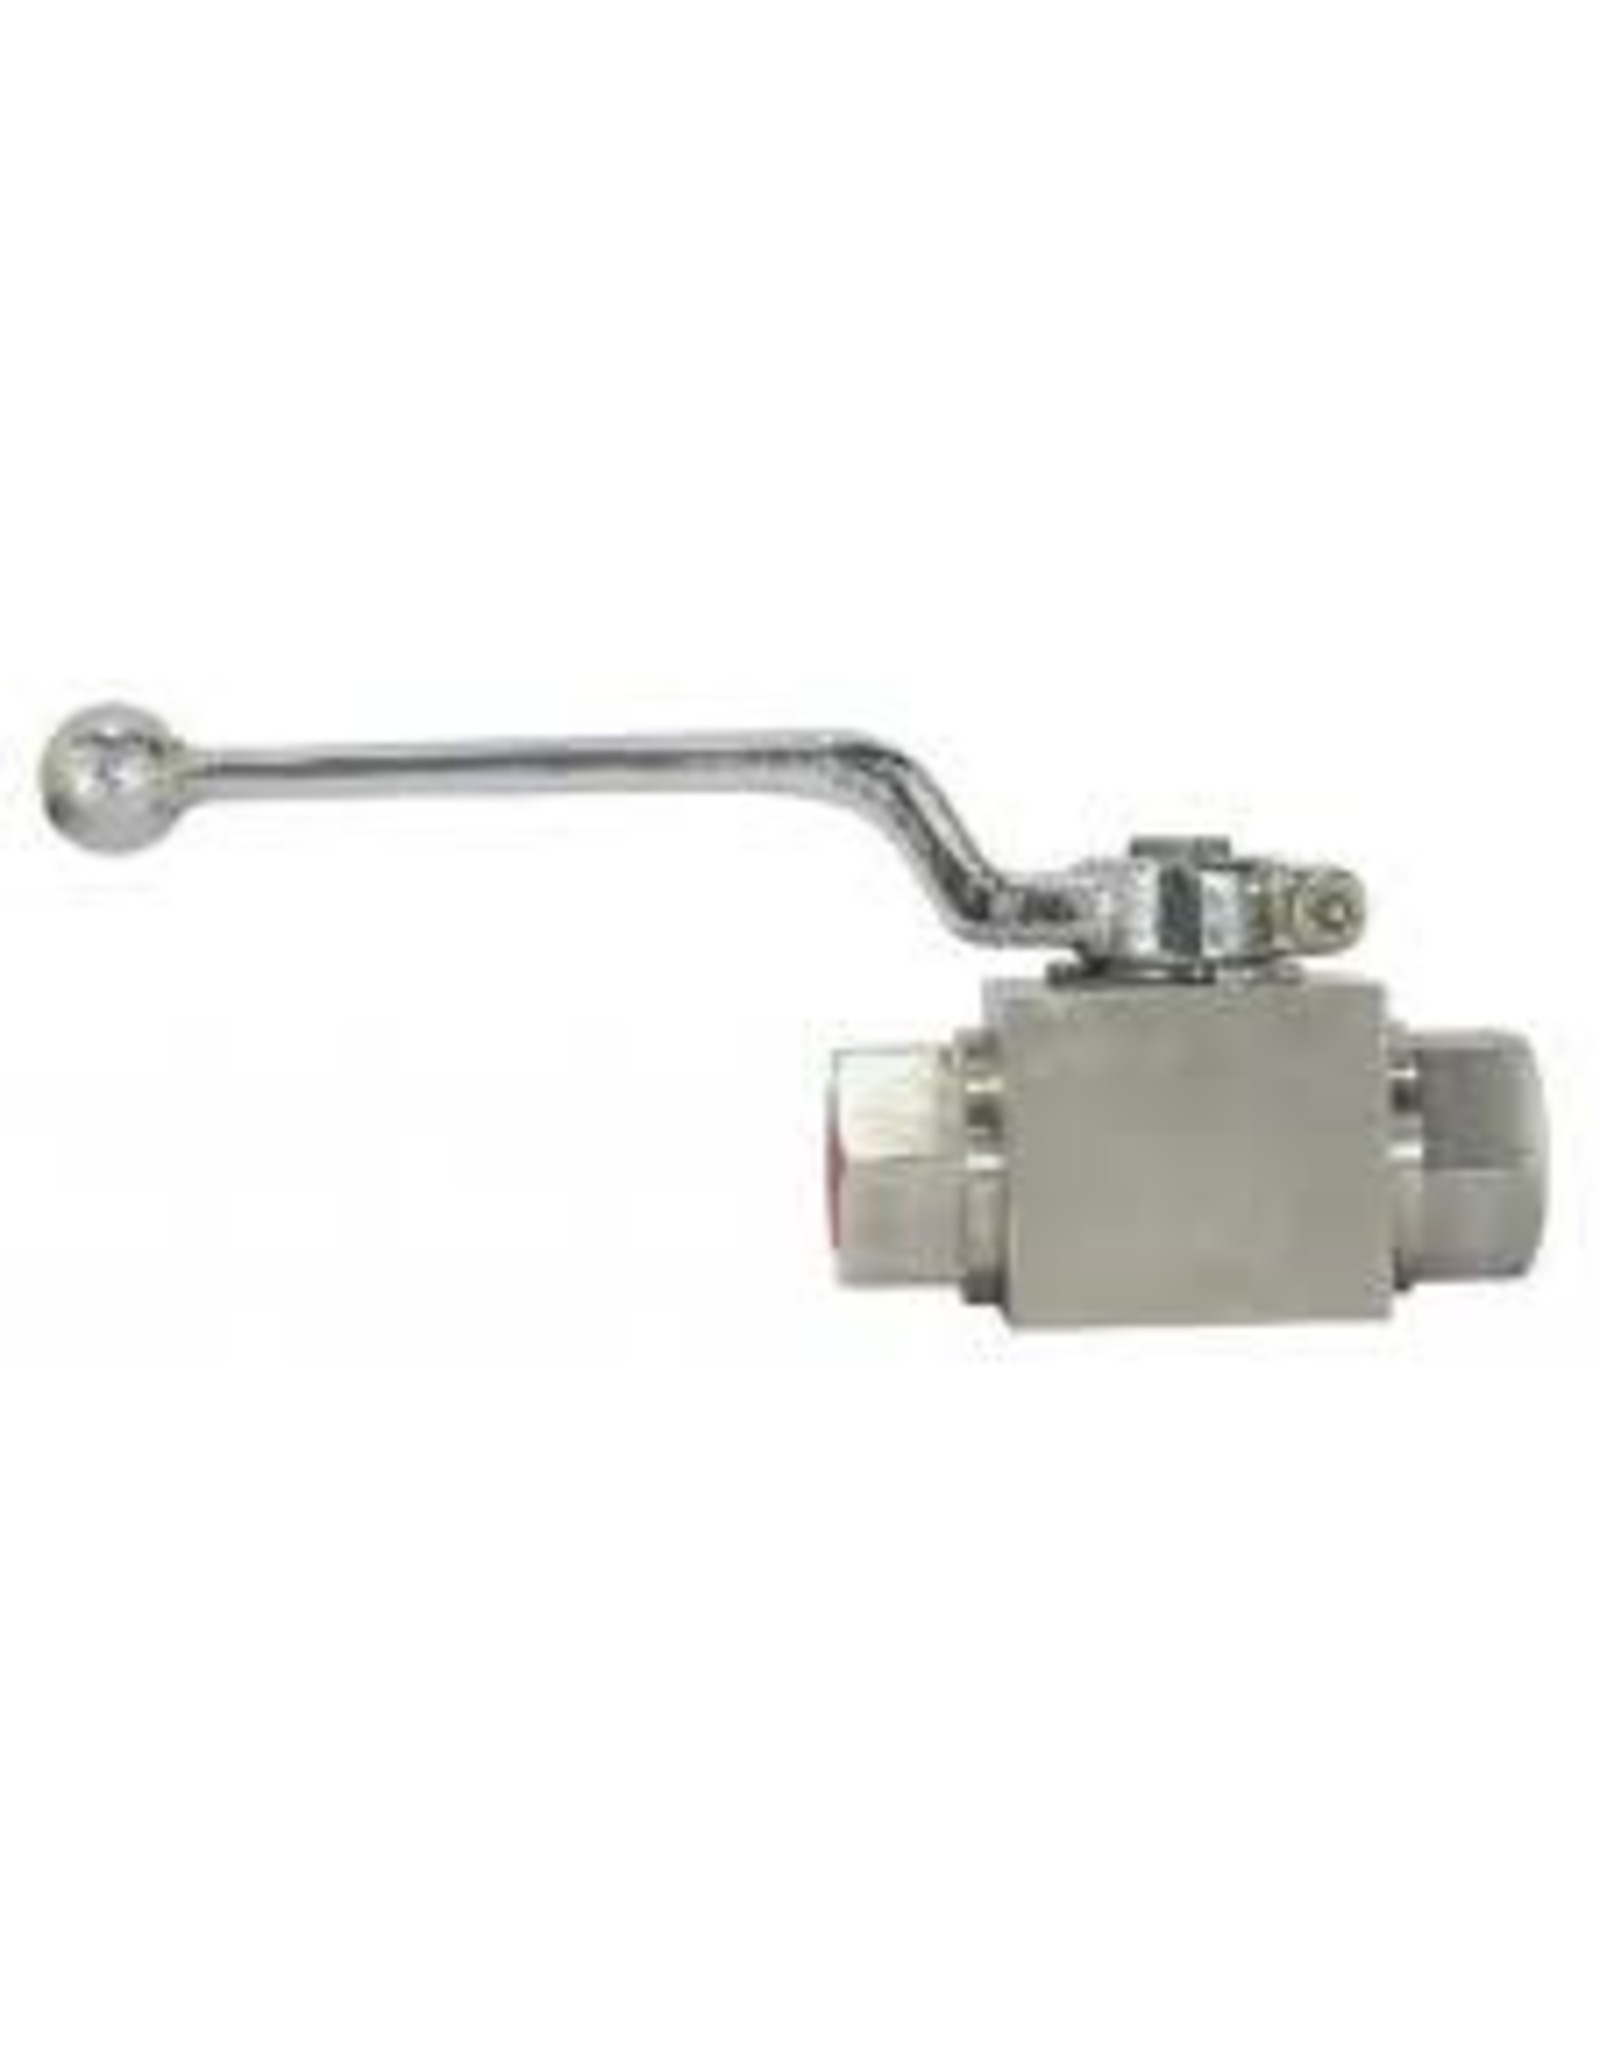 BE 85.300.046S Stainless Ball Valve 7200psi